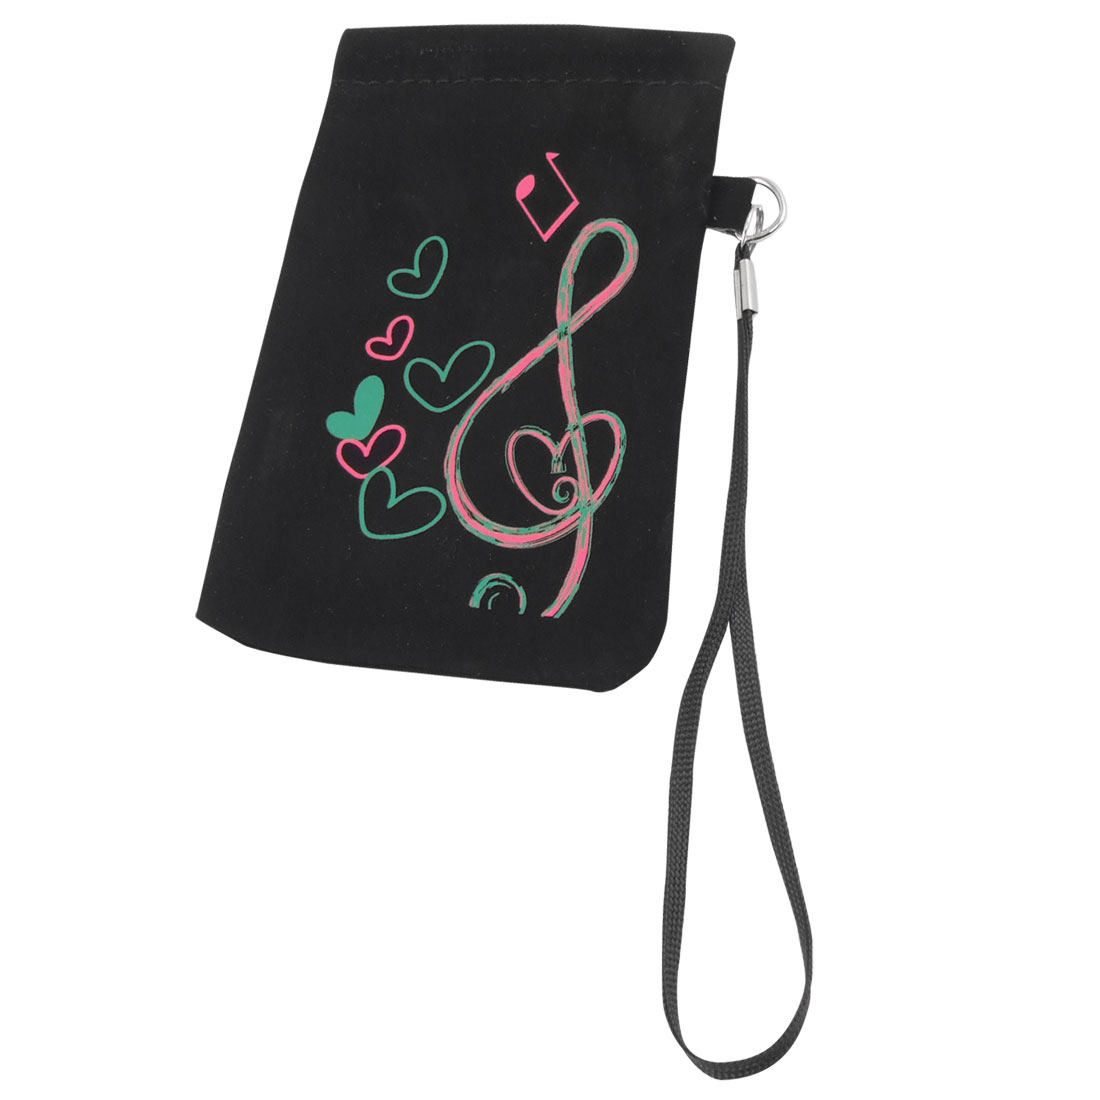 Portable Heart Print Vertical Pouch Bag Holder Black for iPhone 4 4G 4S